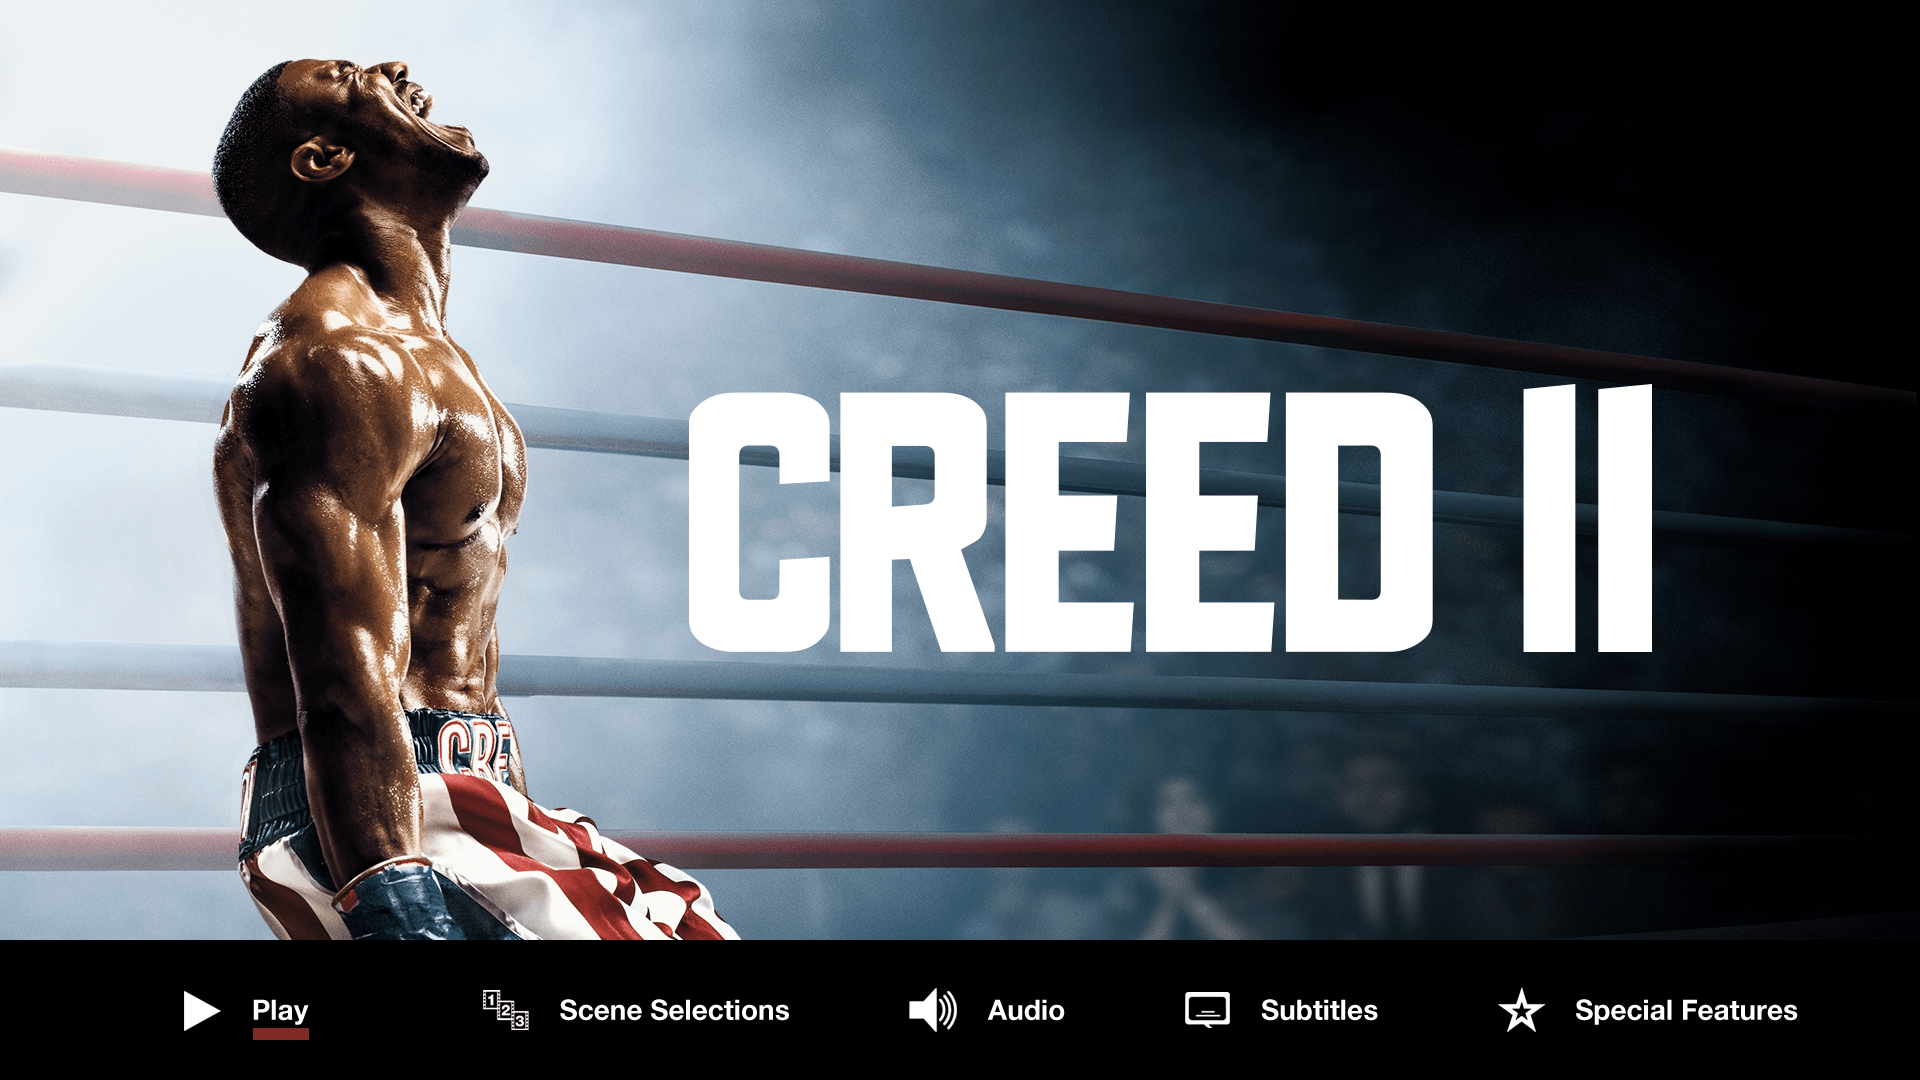 creed-ii-bd-menu-min.png